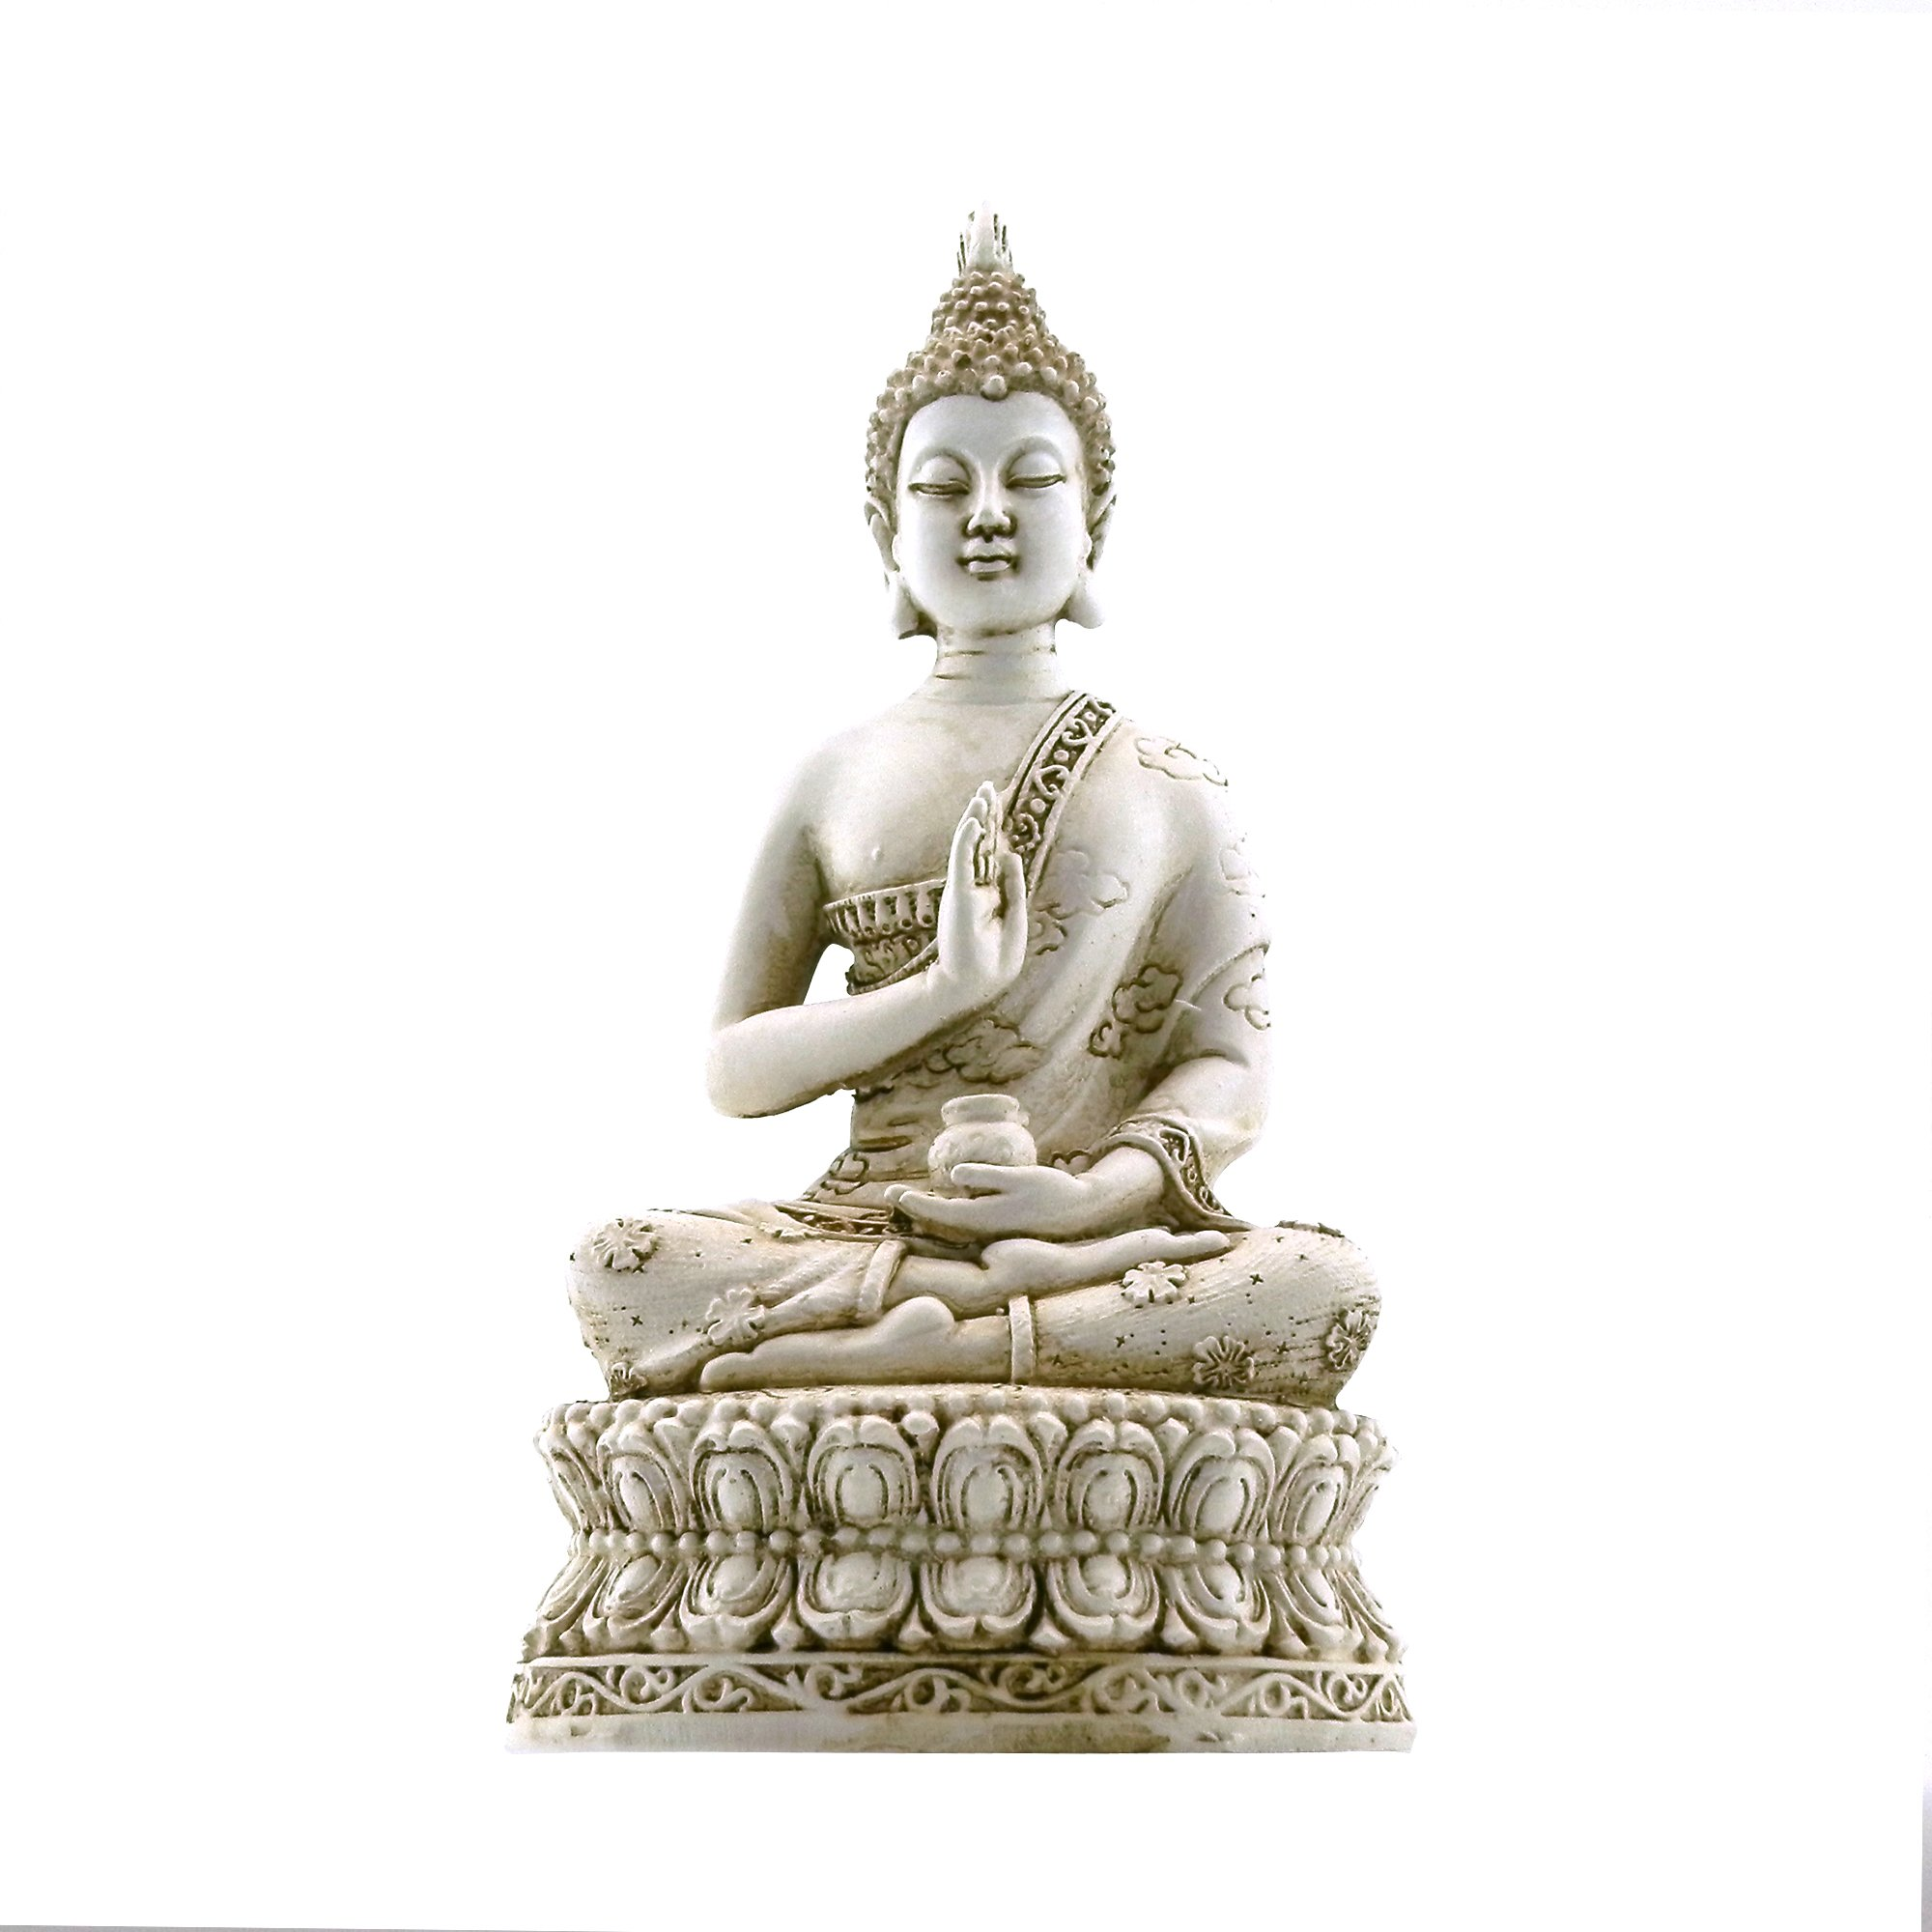 Cheap ivory buddha find ivory buddha deals on line at alibaba get quotations ornerx thai sitting buddha statue for home decor ivory 67 mozeypictures Images